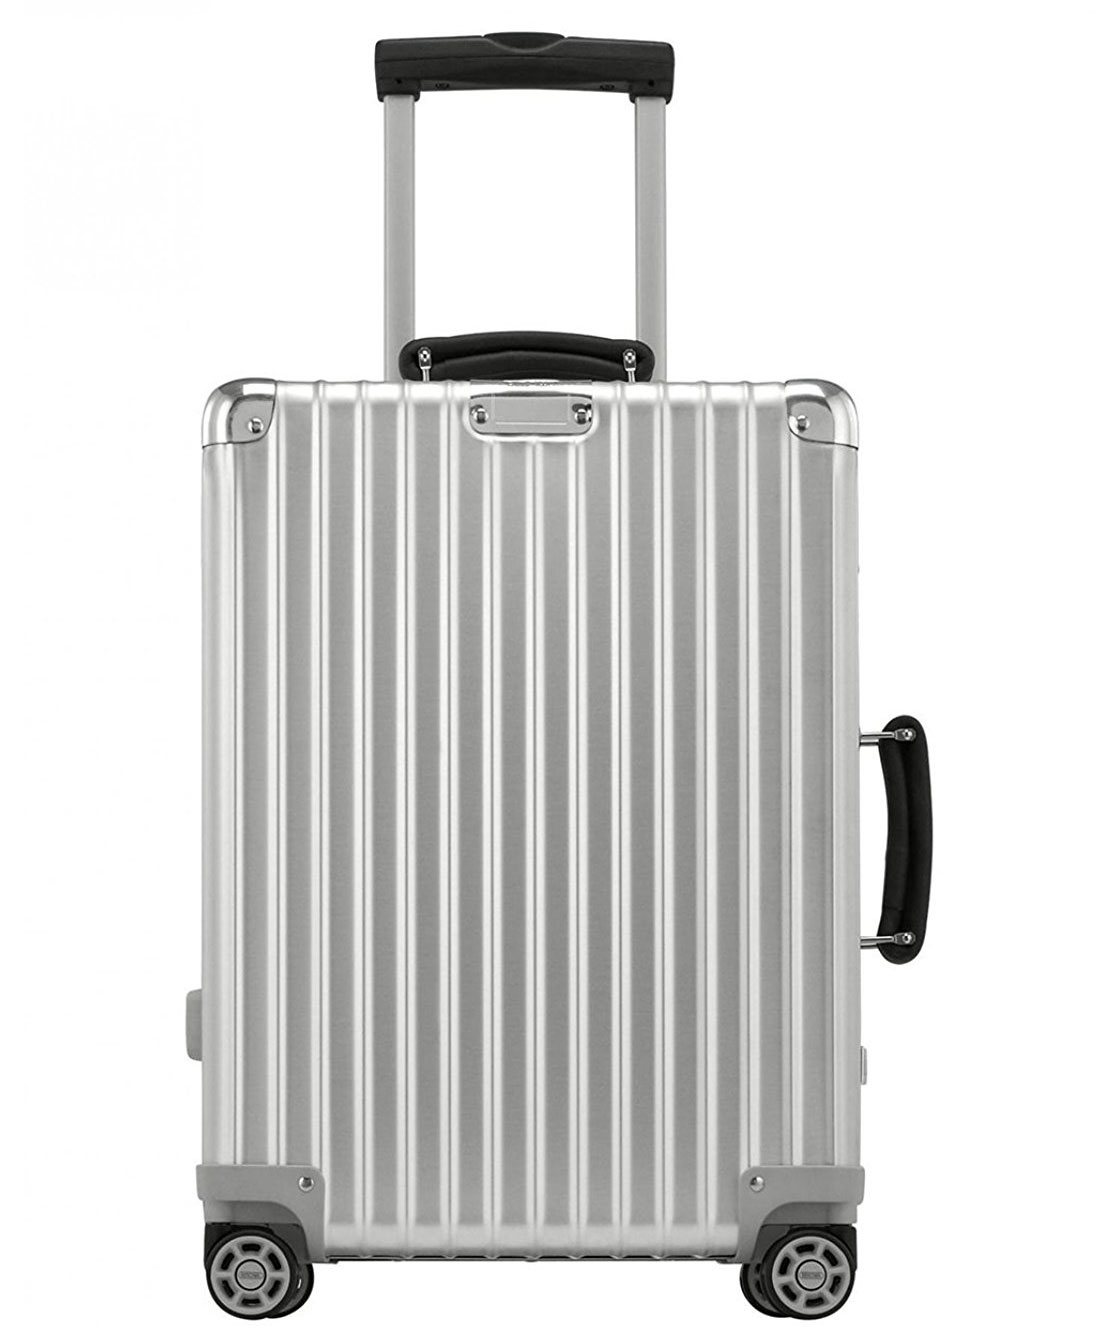 Rimowa Classic Flight IATA Carry on Luggage 21  Cabin Multiwheel